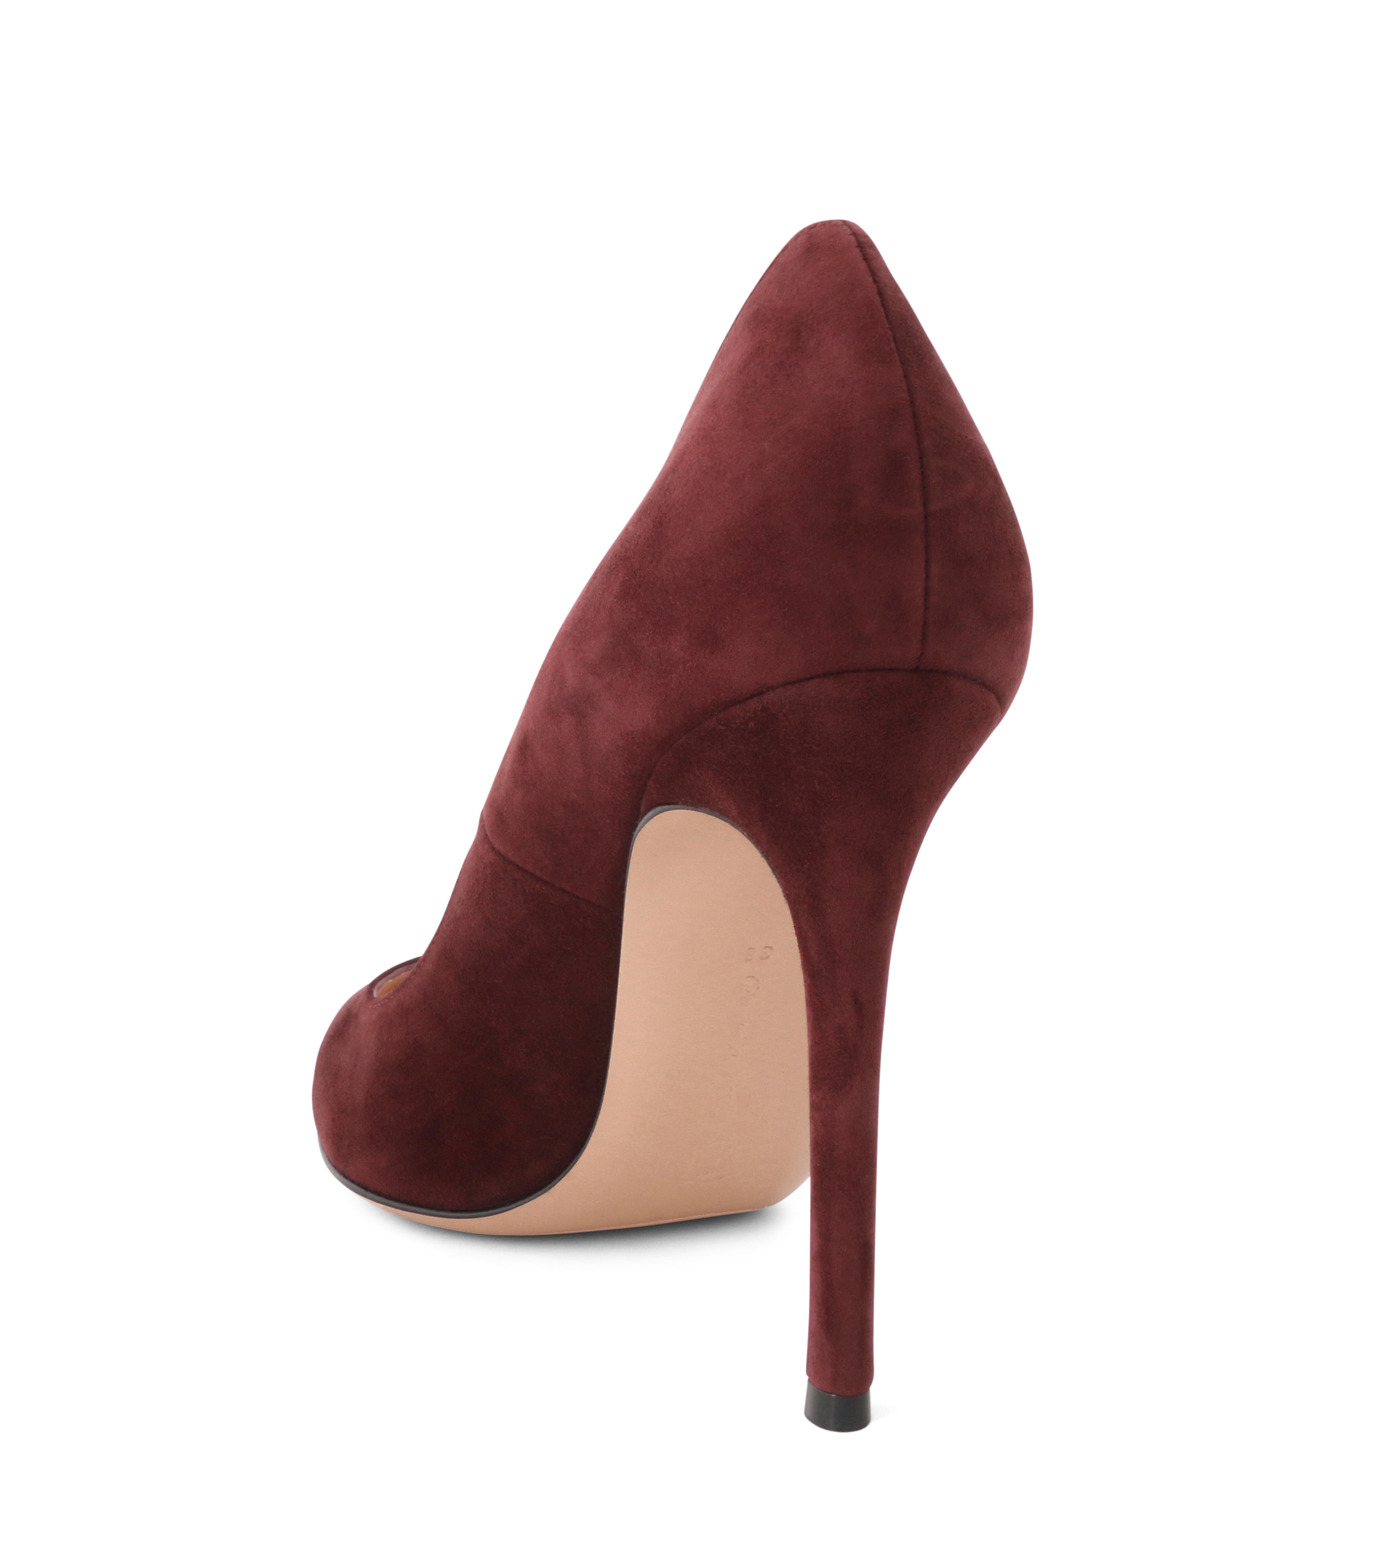 Gianvito Rossi(ジャンヴィト ロッシ)のSuede Pump-BORDEAUX(パンプス/pumps)-G28470-63 拡大詳細画像2